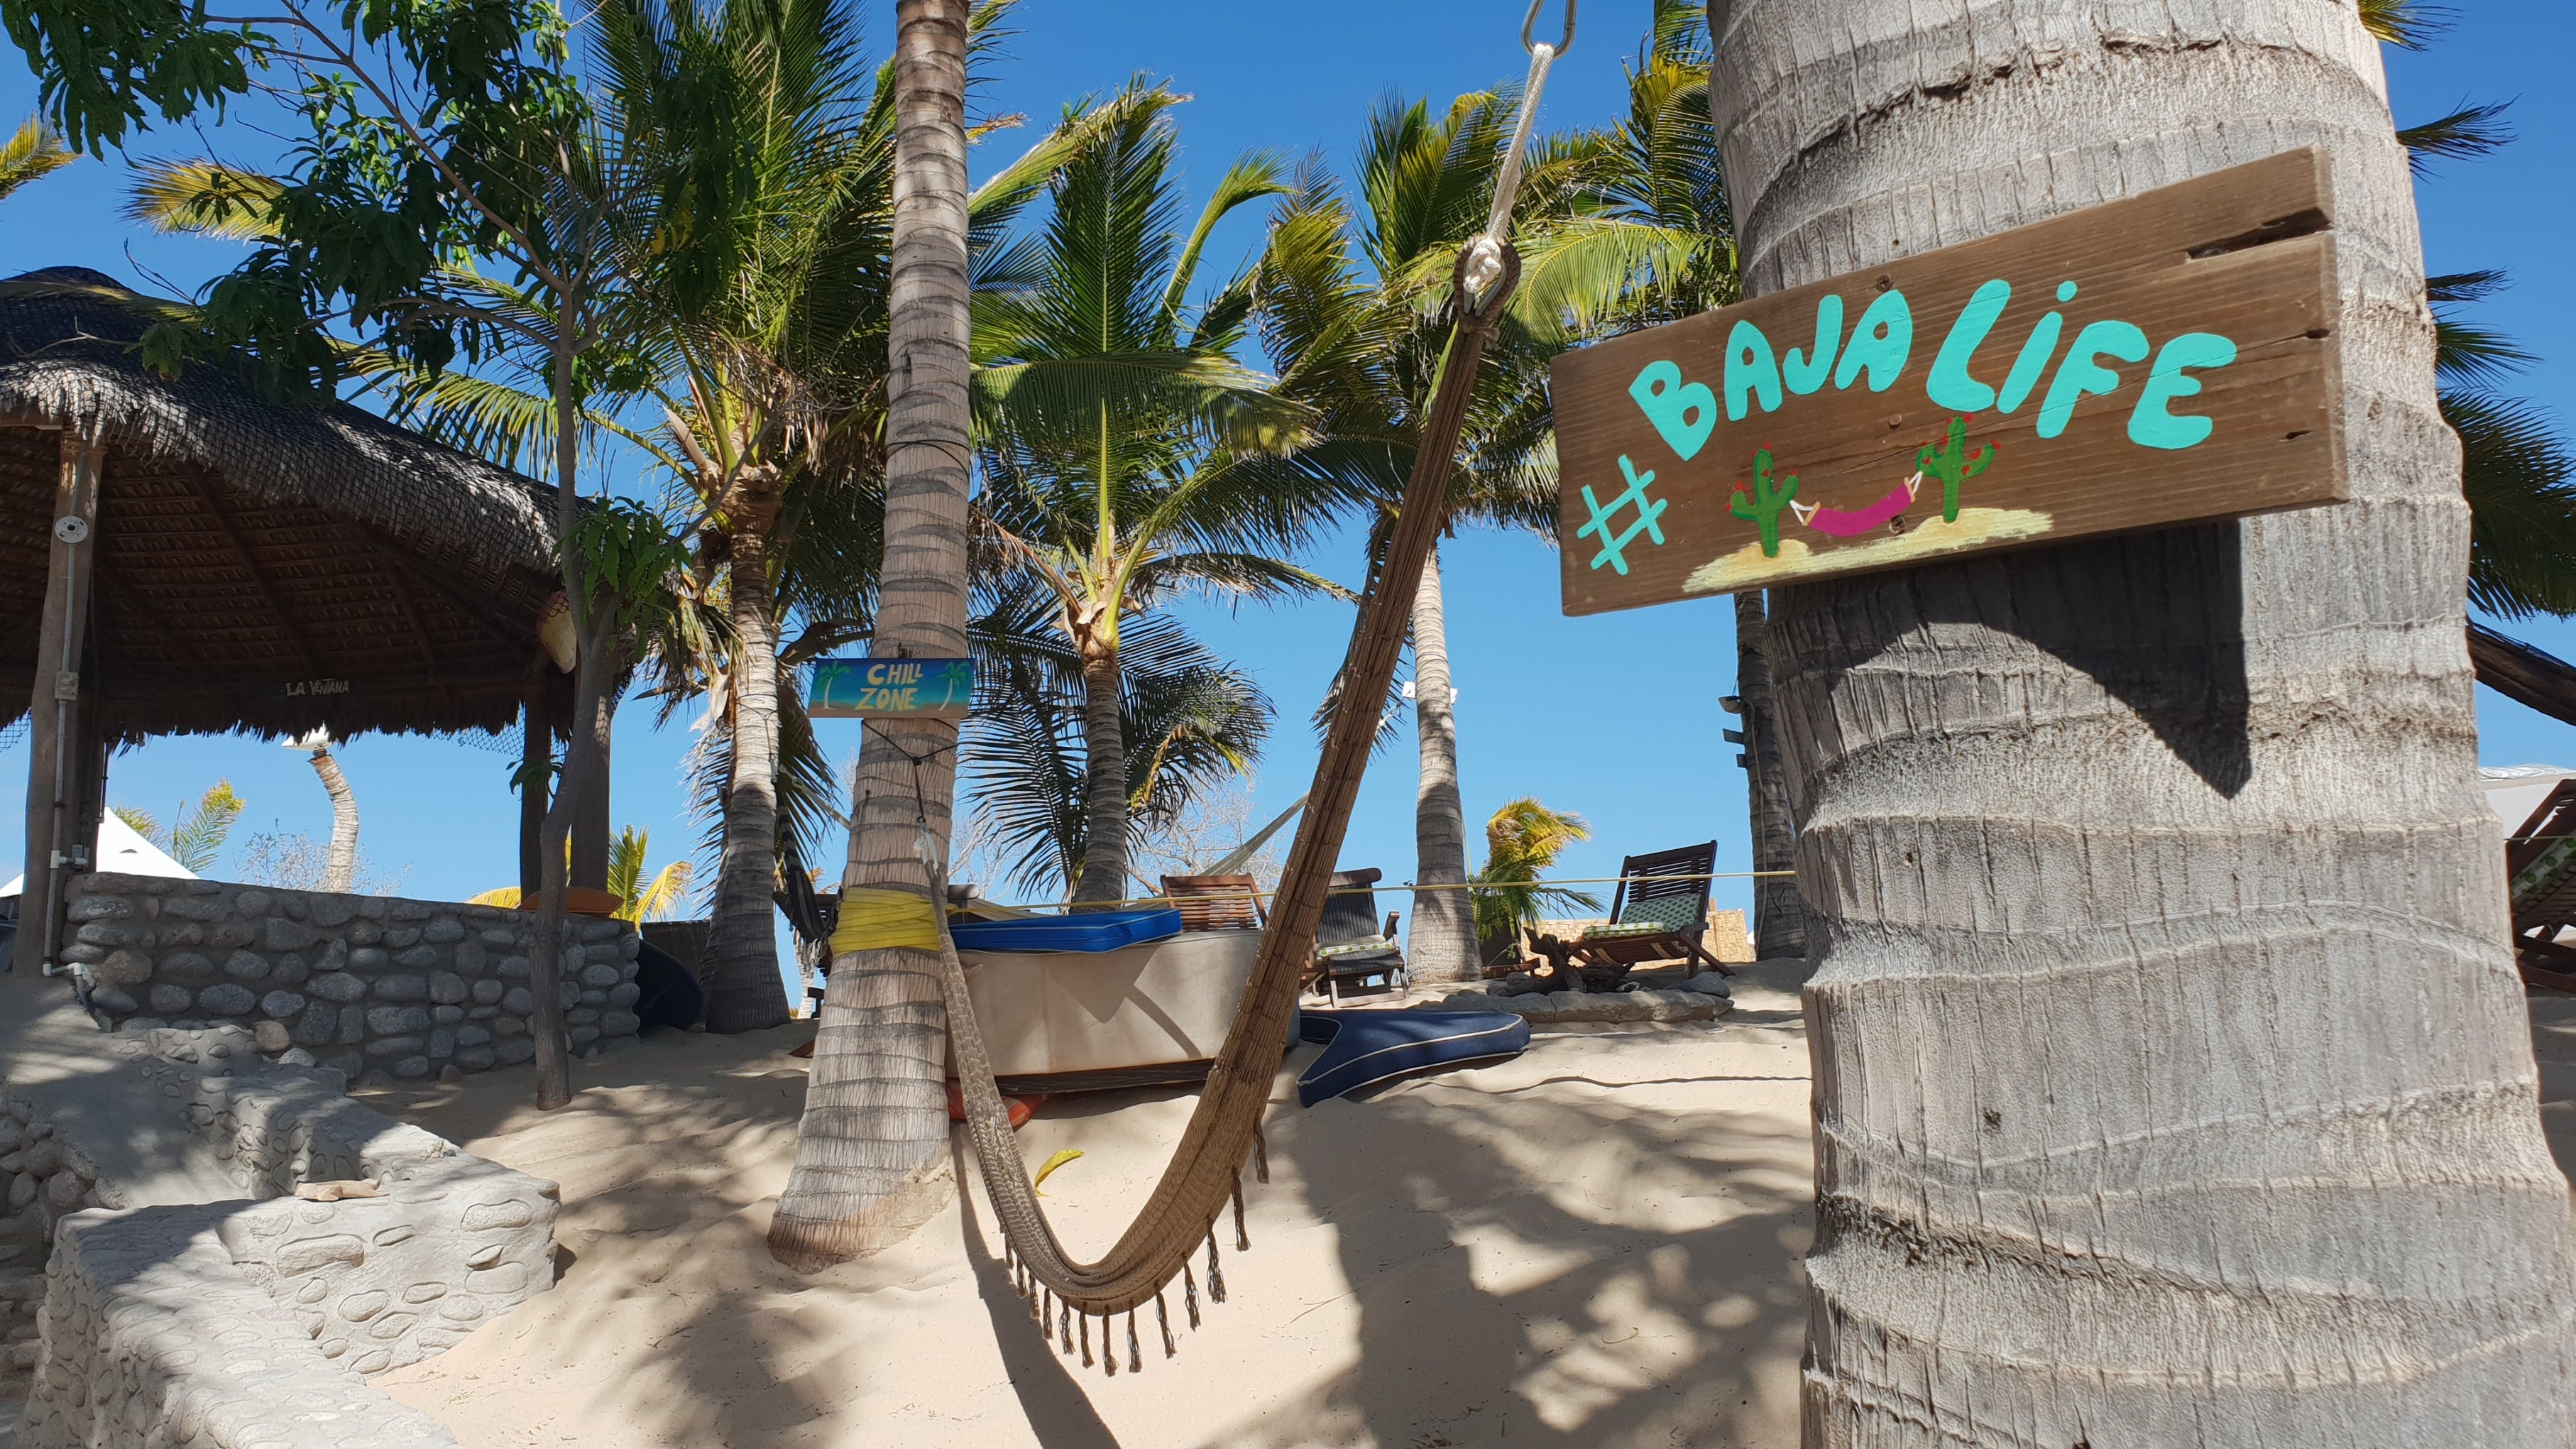 Property on a beach with palm trees and hammocks in La Ventana.